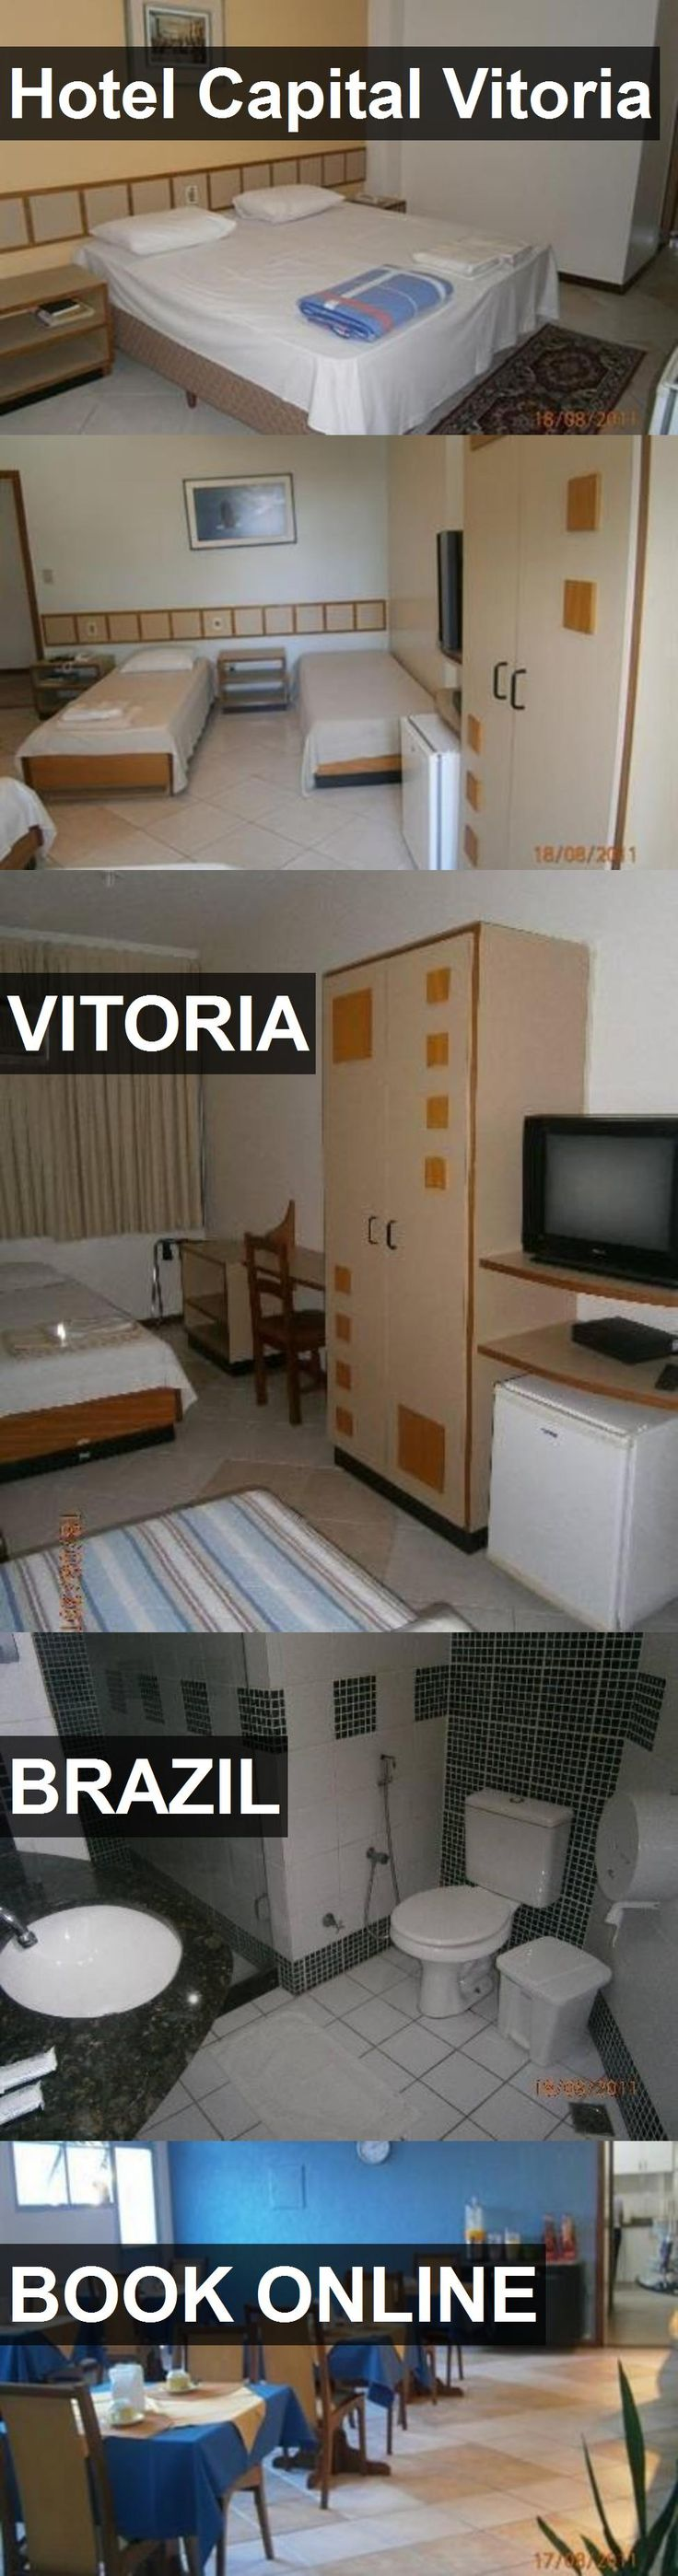 Hotel Hotel Capital Vitoria in Vitoria, Brazil. For more information, photos, reviews and best prices please follow the link. #Brazil #Vitoria #hotel #travel #vacation